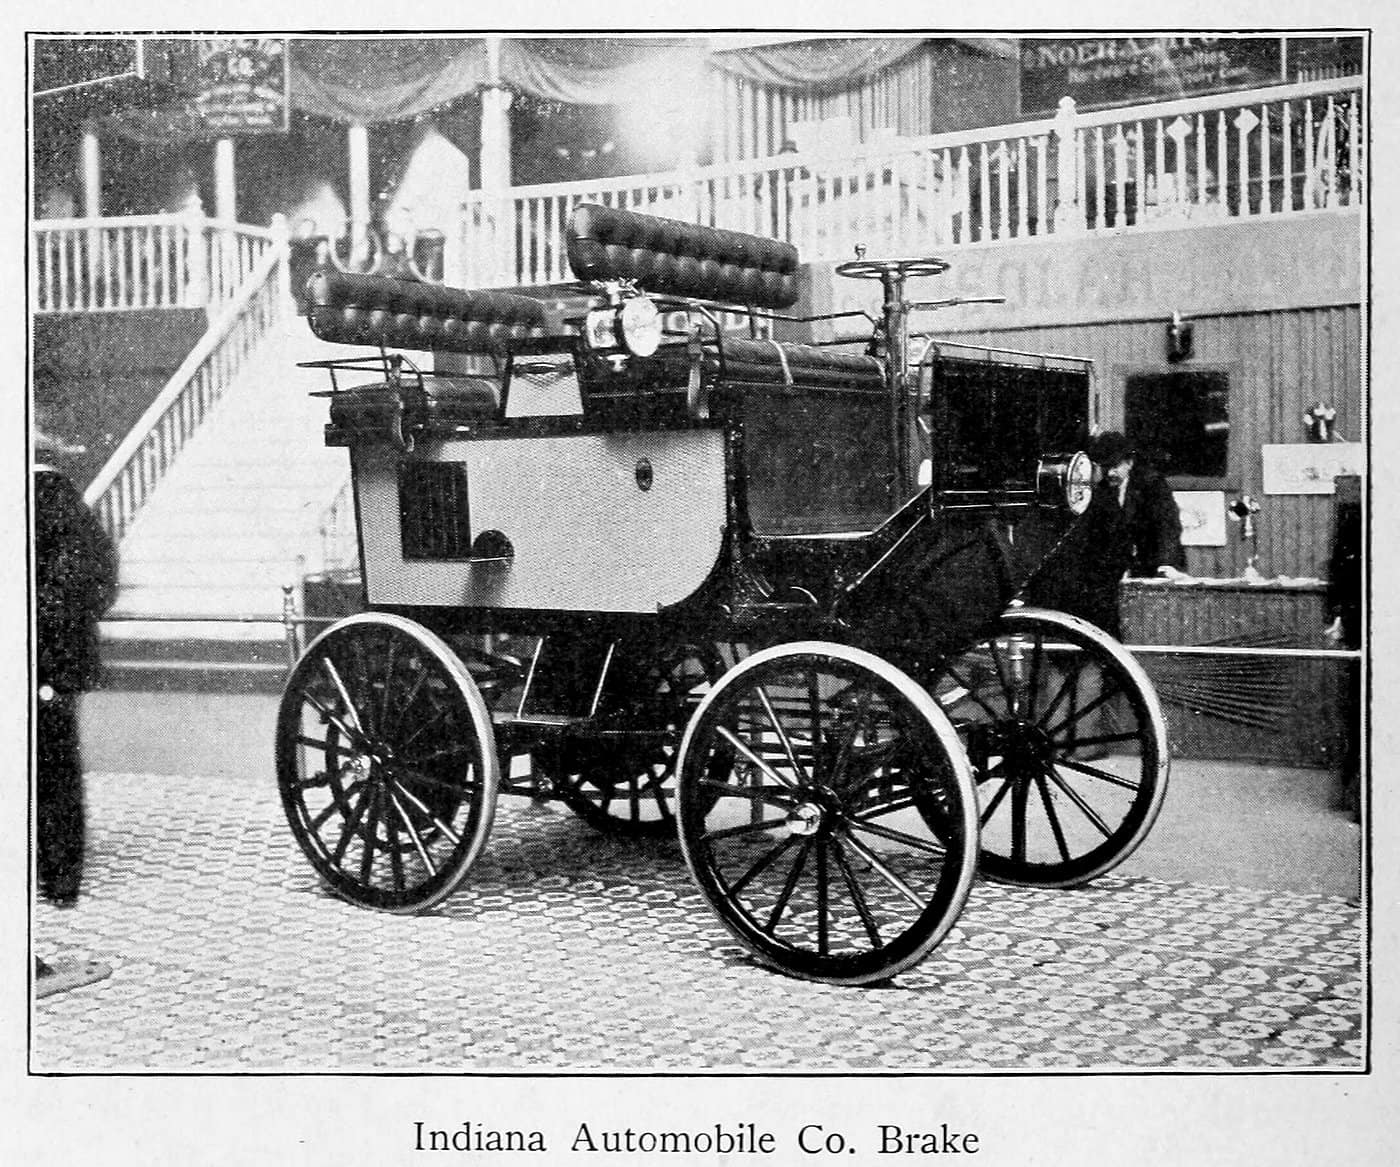 Indiana Automobile Co. Brake (1899)